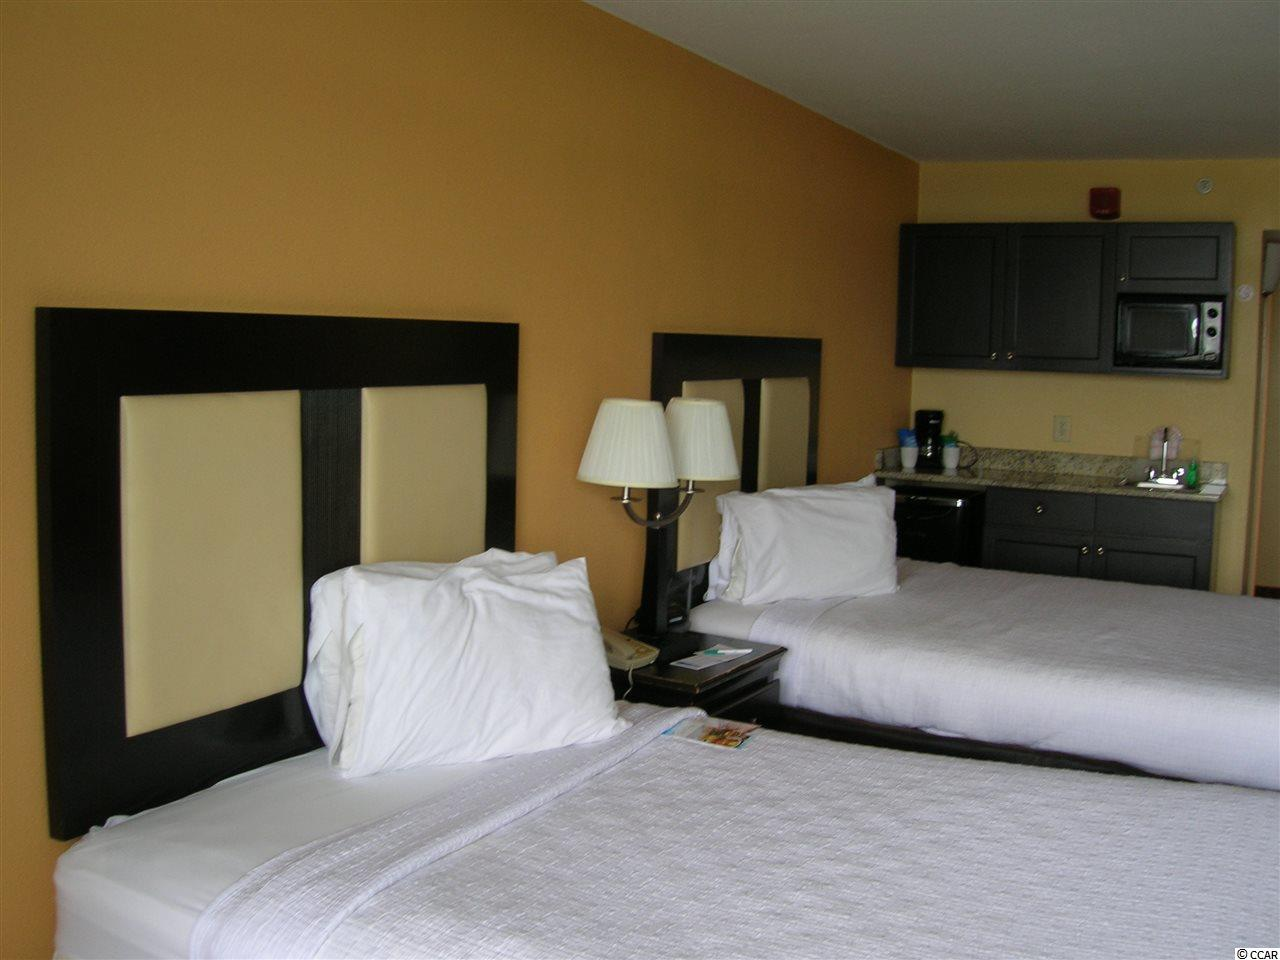 Contact your Realtor for this Efficiency bedroom condo for sale at  Landmark